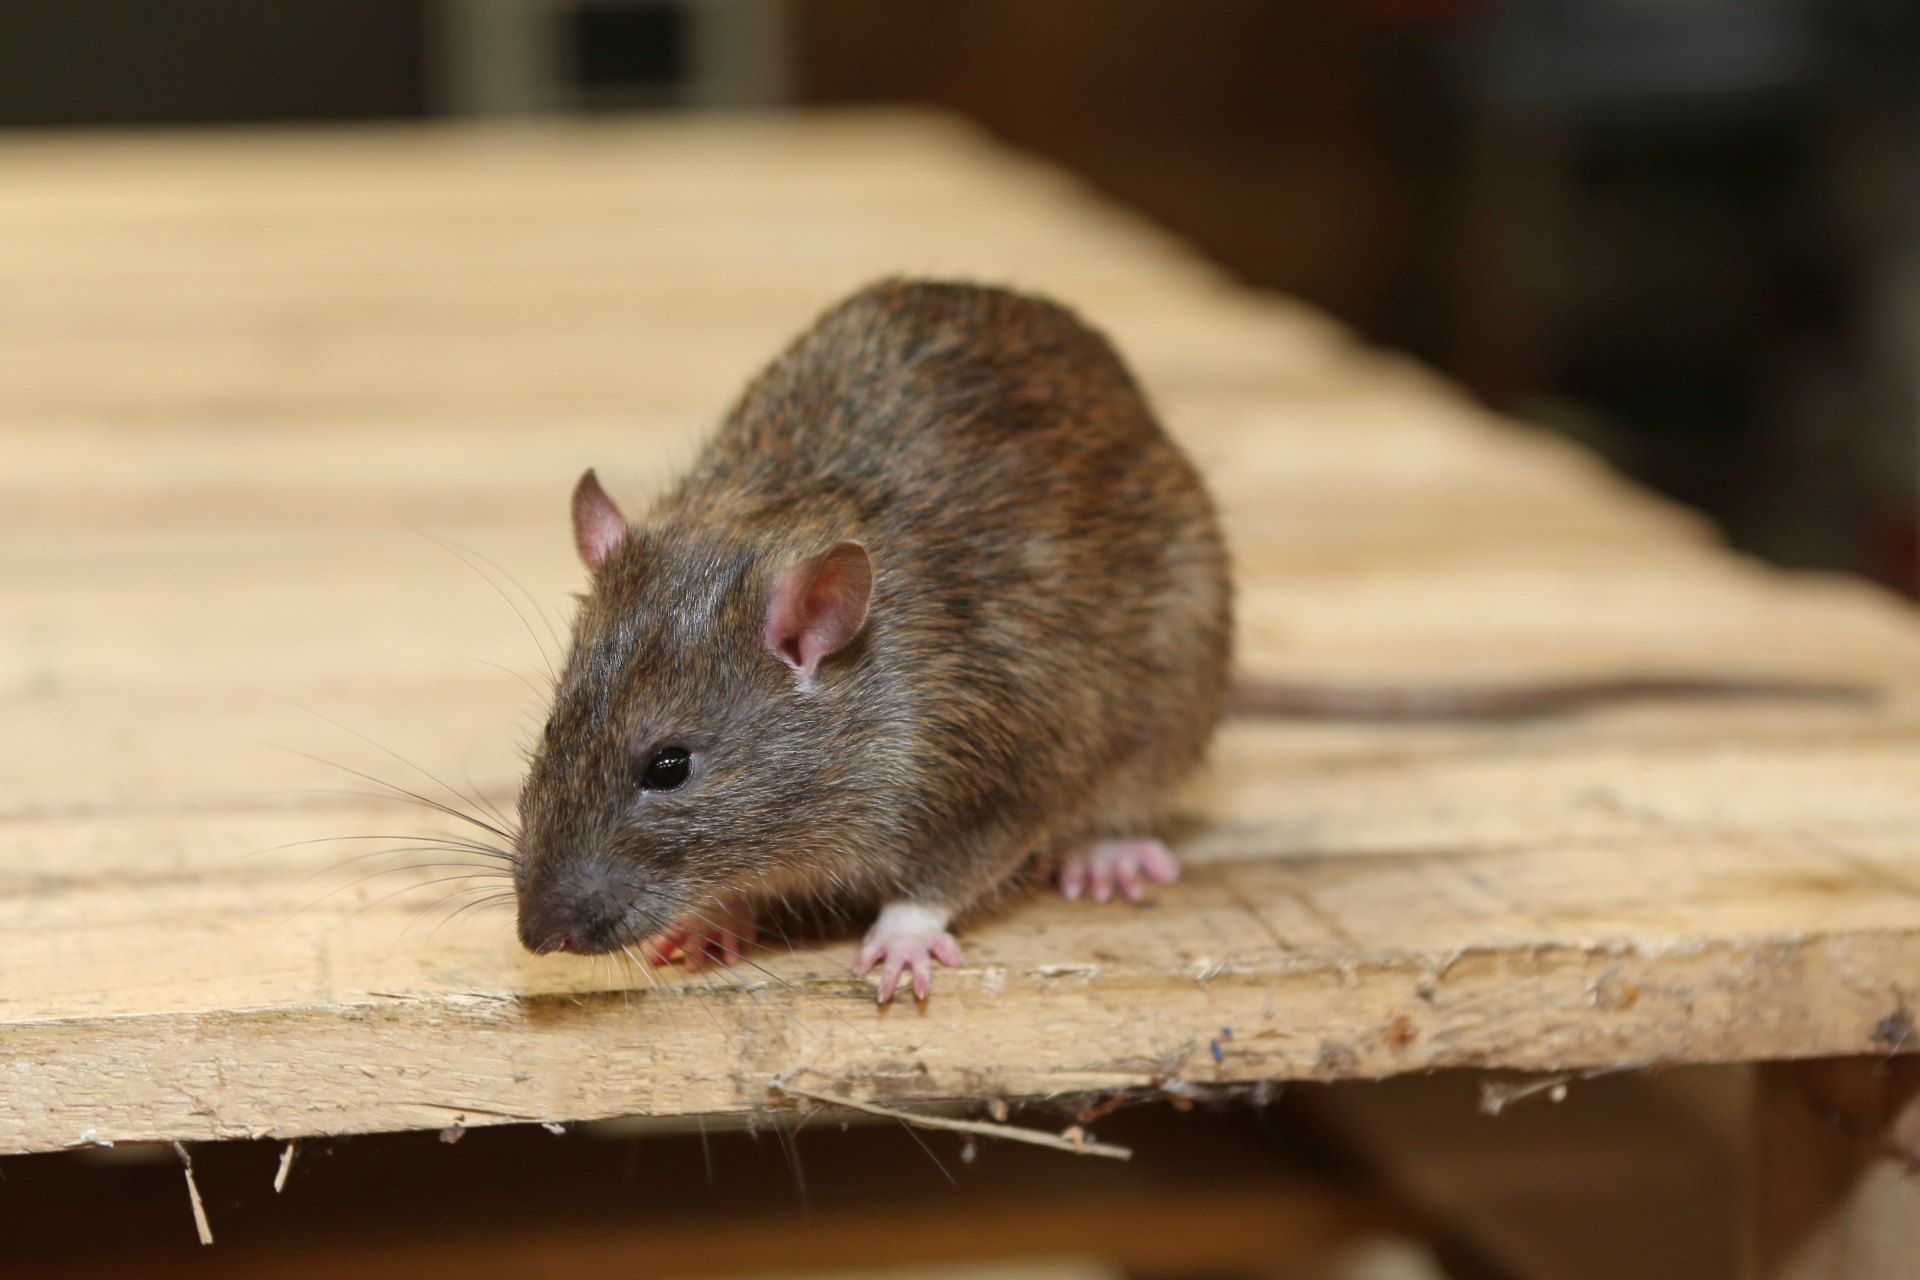 Rat Control, Pest Control in Raynes Park, South Wimbledon, SW20. Call Now 020 8166 9746